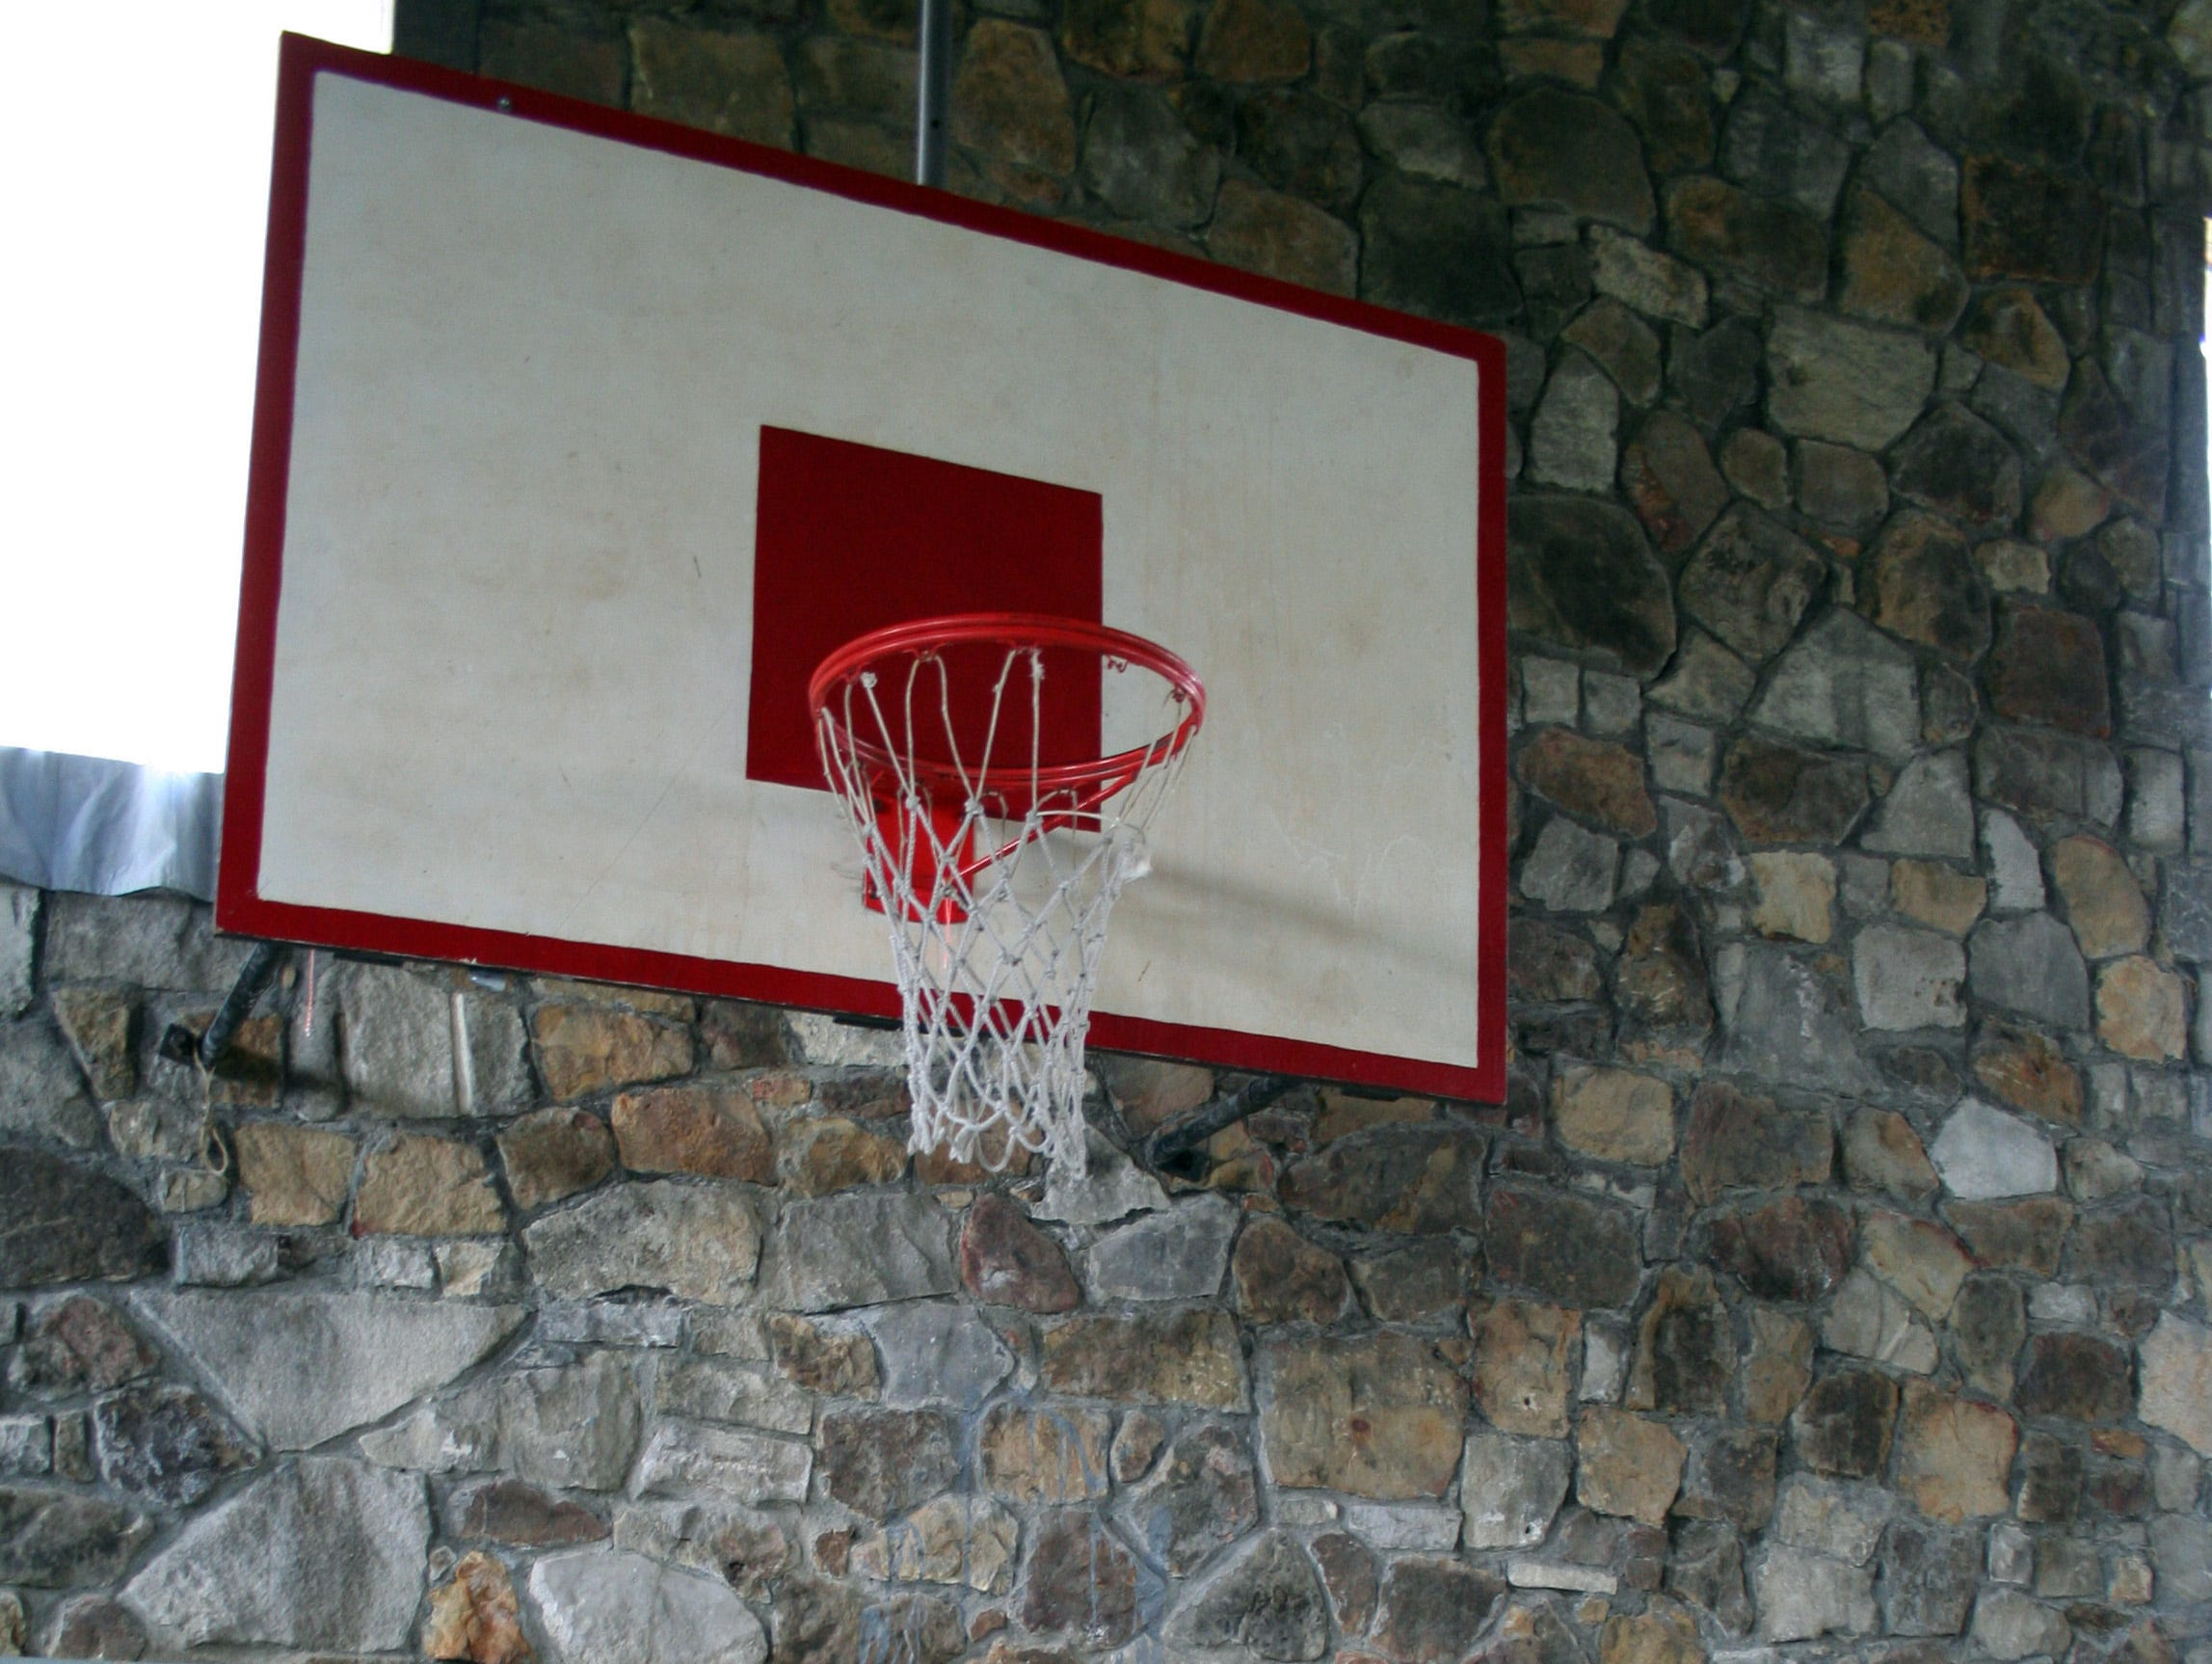 FILE – Little more than a foot separates the basket from the stone wall in the Springville gym.